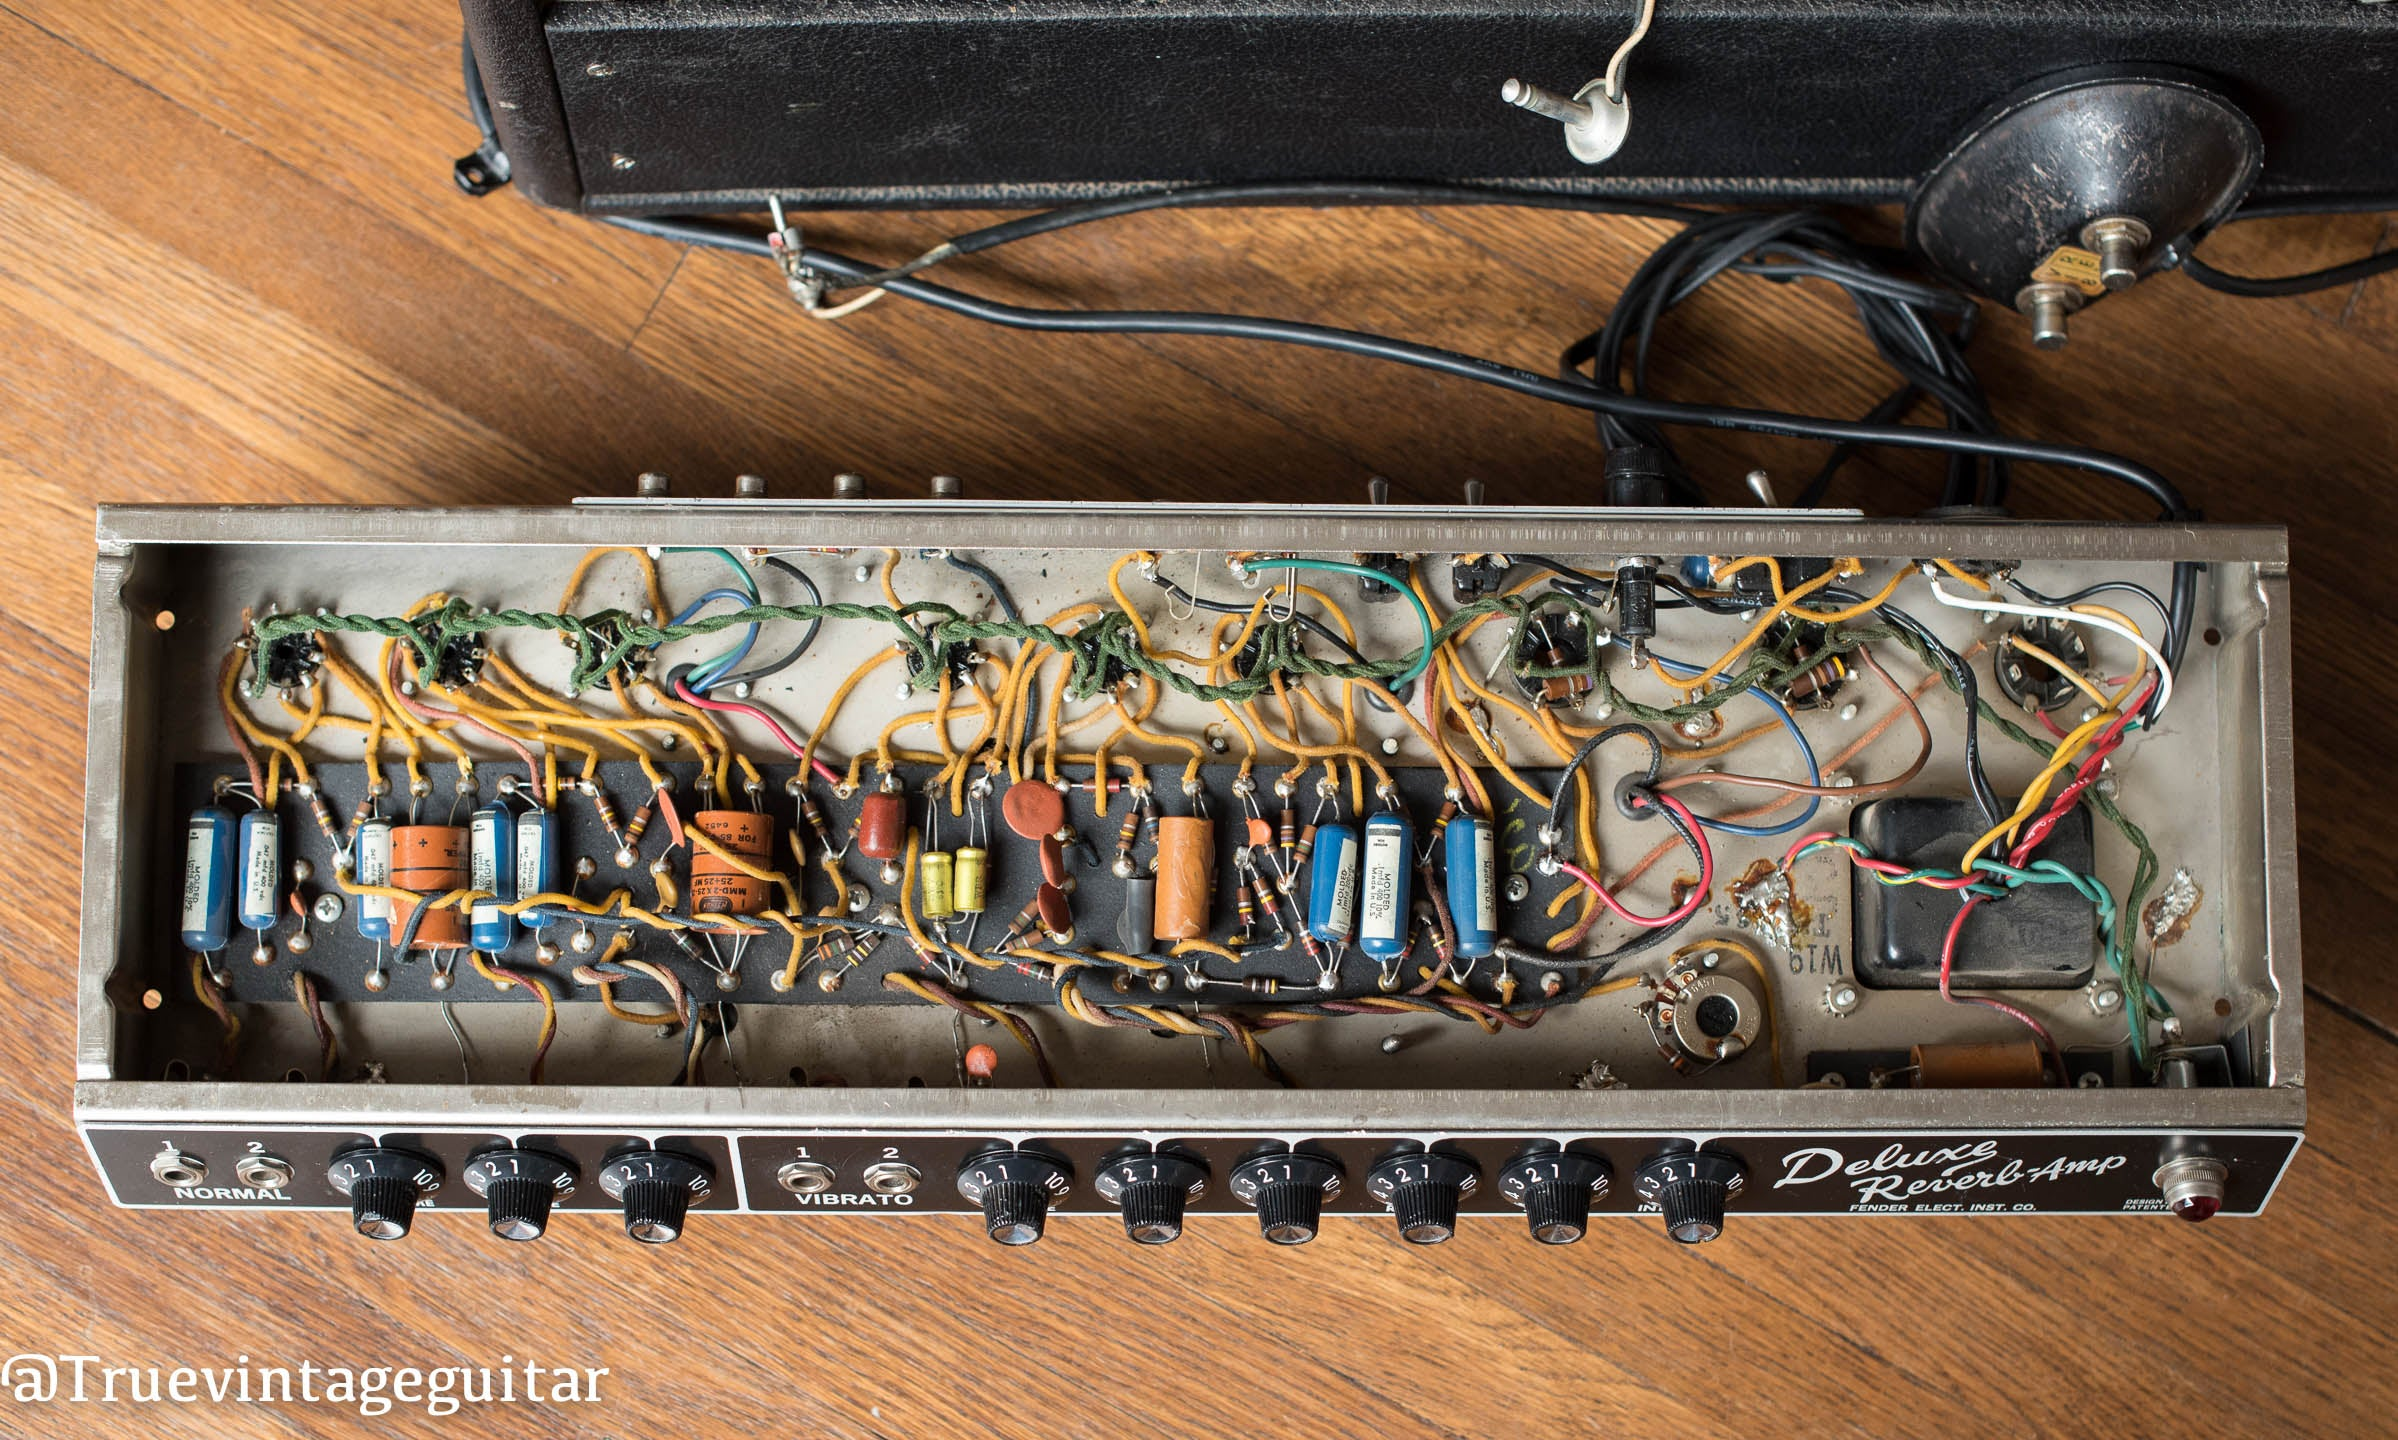 1965 Fender Deluxe Reverb amp, chassis